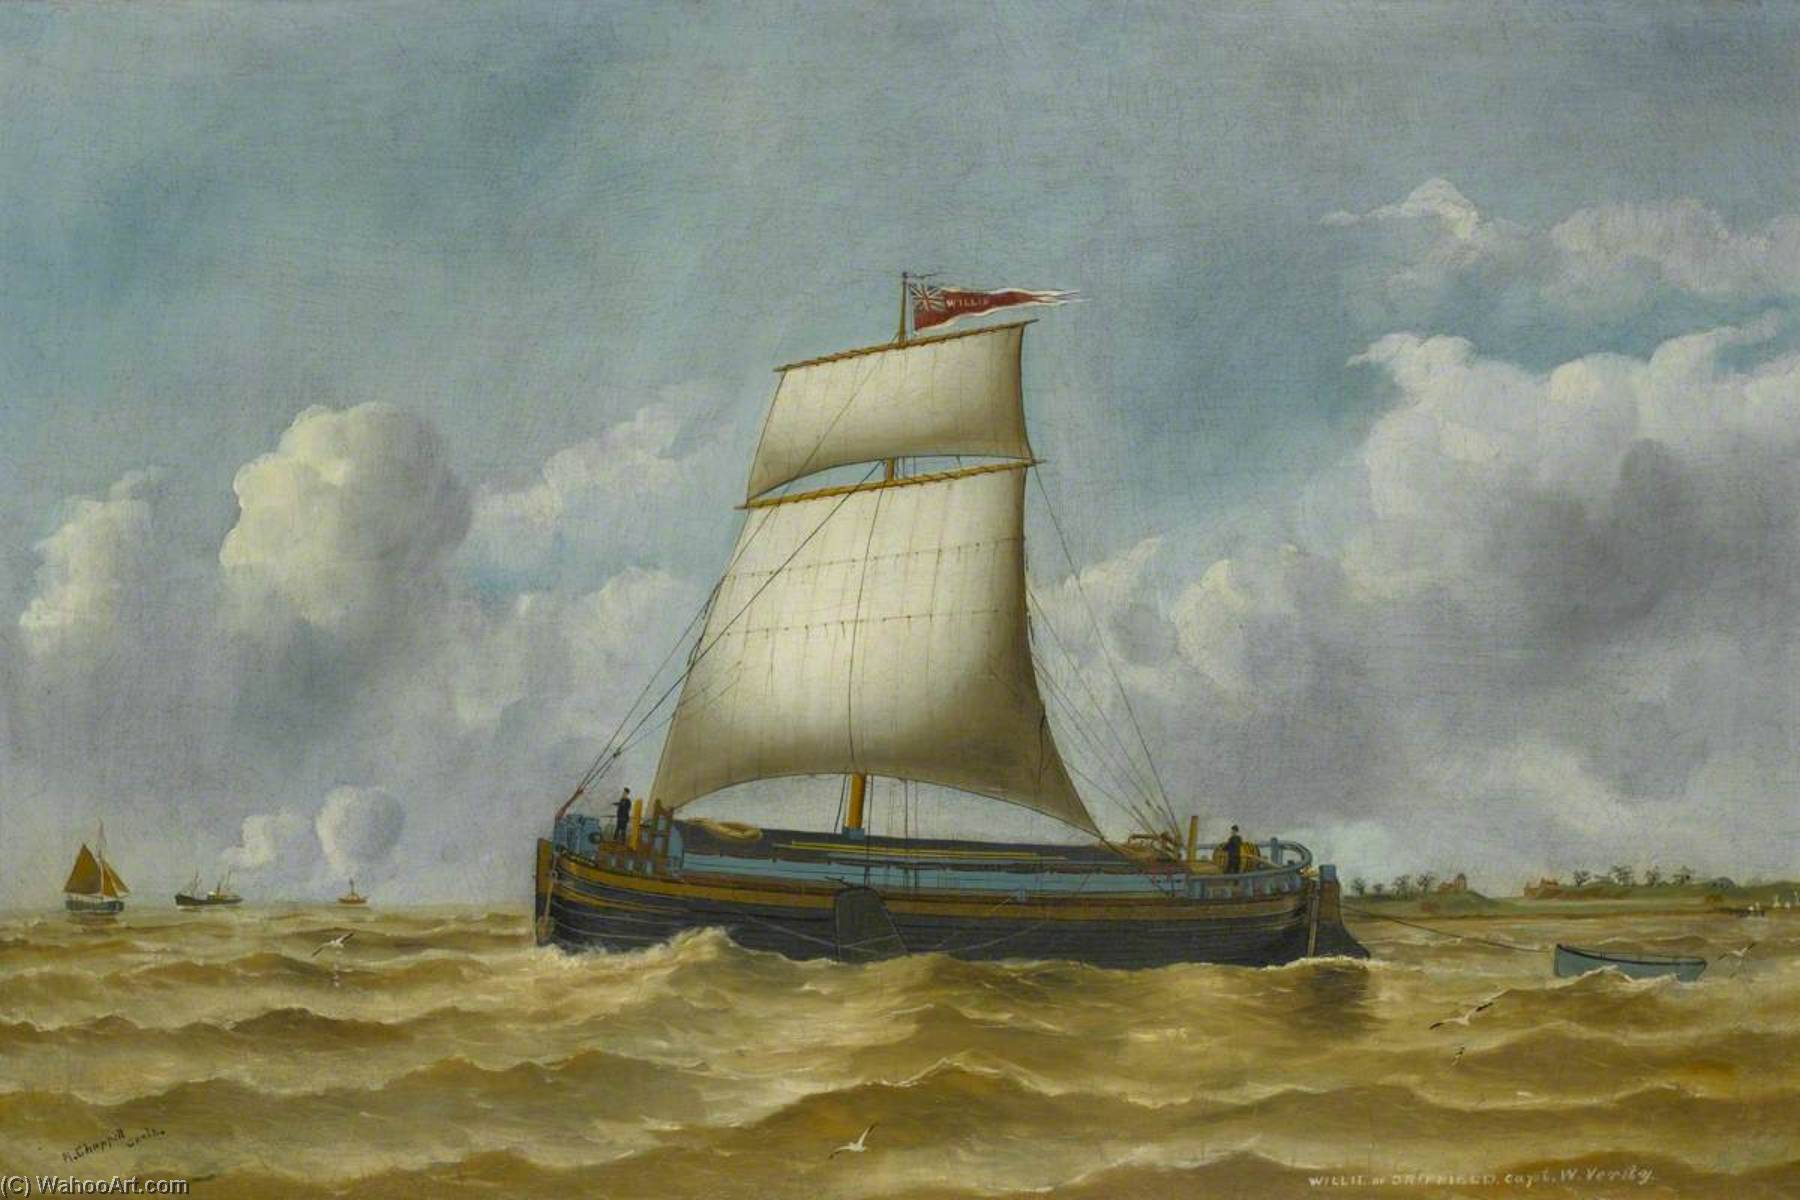 The Humber 'Keel Willie', Oil by Ruben Chappell